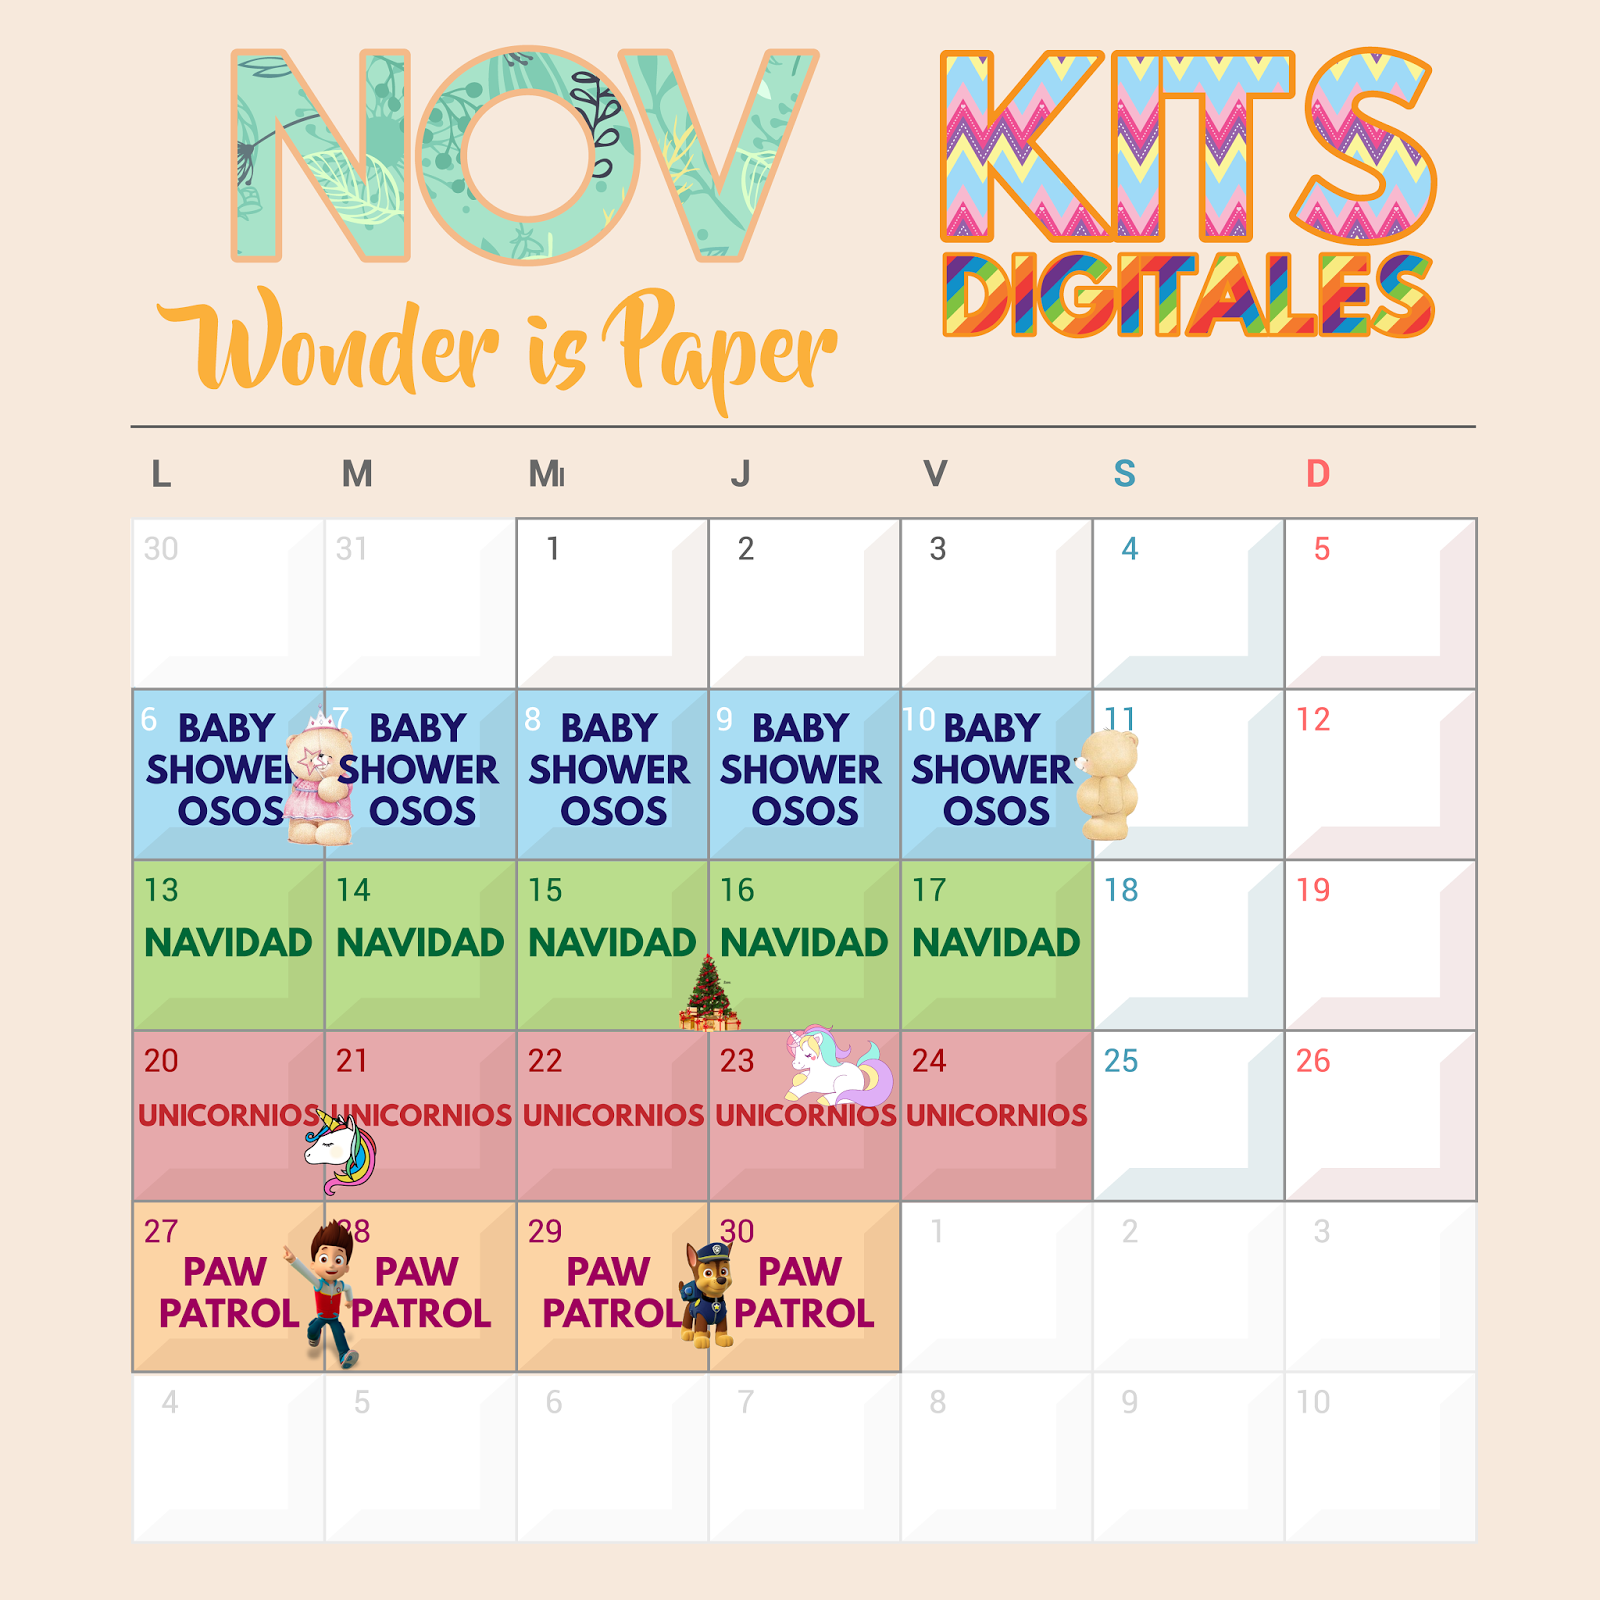 Calendario Mes Noviembre 2017 Calendario Noviembre 2017 Wonder Is Paper